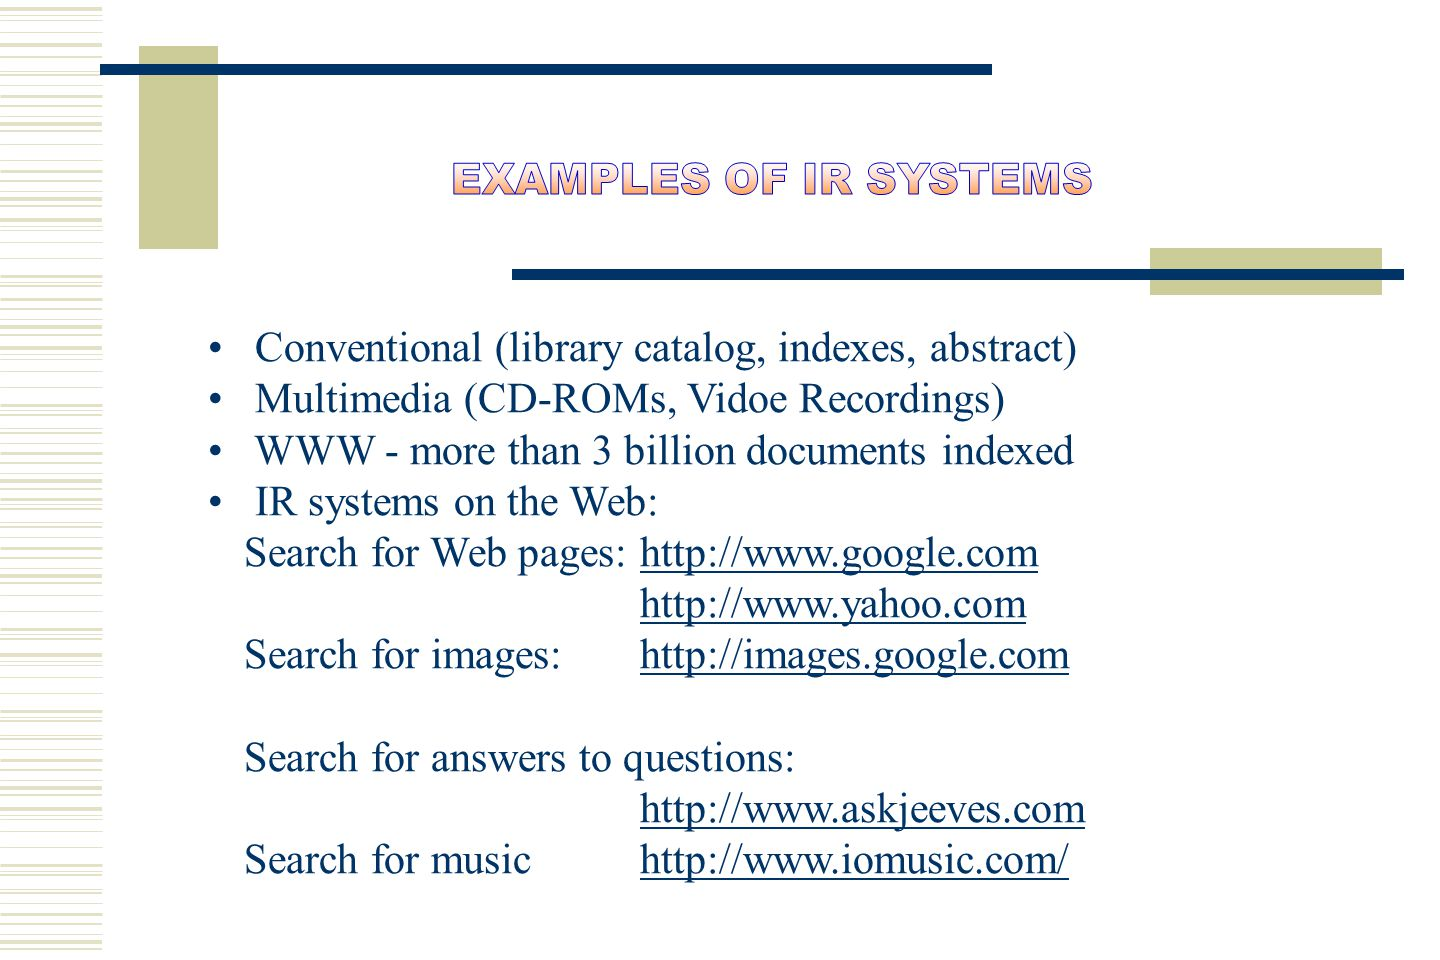 Conventional (library catalog, indexes, abstract) Multimedia (CD-ROMs, Vidoe Recordings) WWW - more than 3 billion documents indexed IR systems on the Web: Search for Web pages: http://www.google.comhttp://www.google.com http://www.yahoo.com Search for images: http://images.google.comhttp://images.google.com Search for answers to questions: http://www.askjeeves.com http://www.askjeeves.com Search for music http://www.iomusic.com/http://www.iomusic.com/